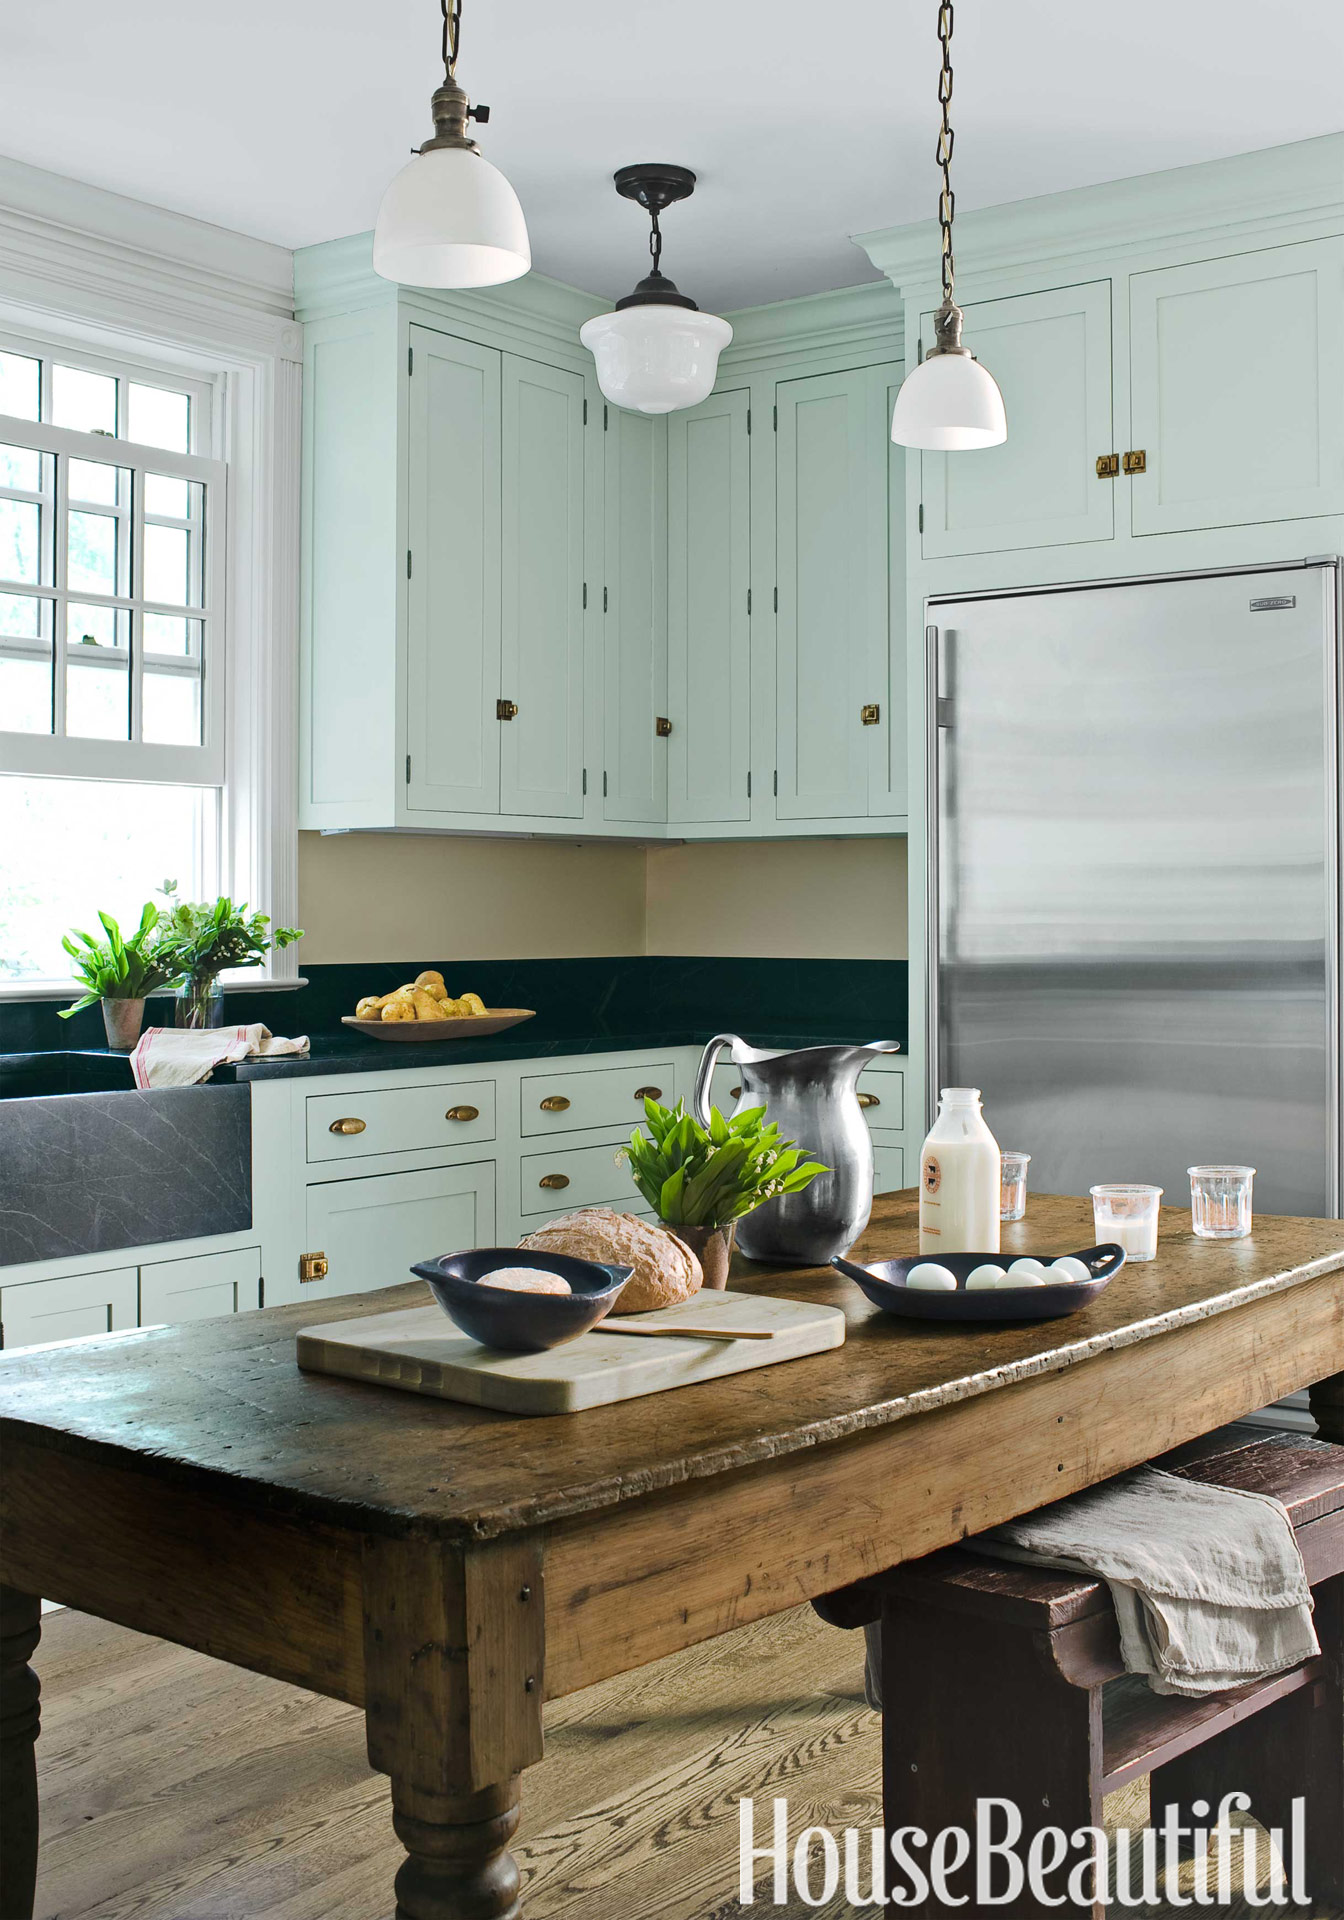 Farmhouse kitchen design old fashioned kitchen - Farmhouse style kitchen cabinets ...